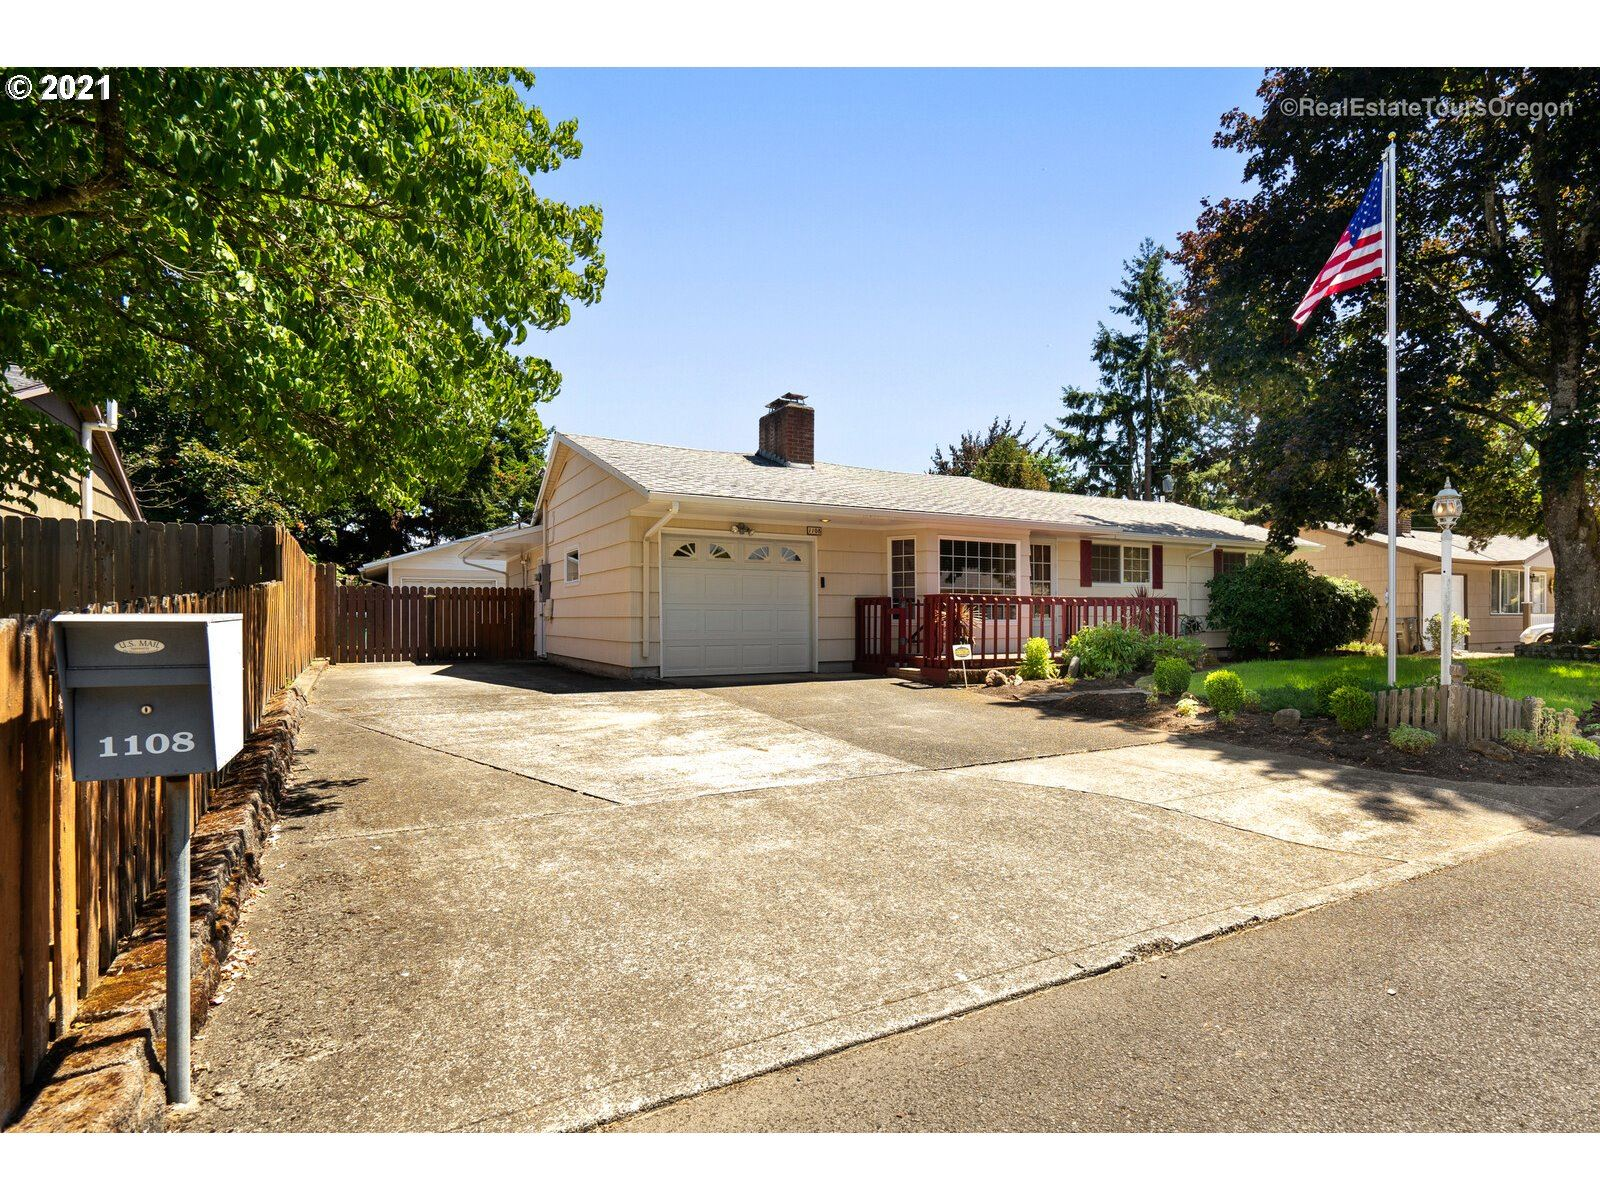 1108 SE 168TH AVE, Portland, OR 97233 - MLS#: 21246742